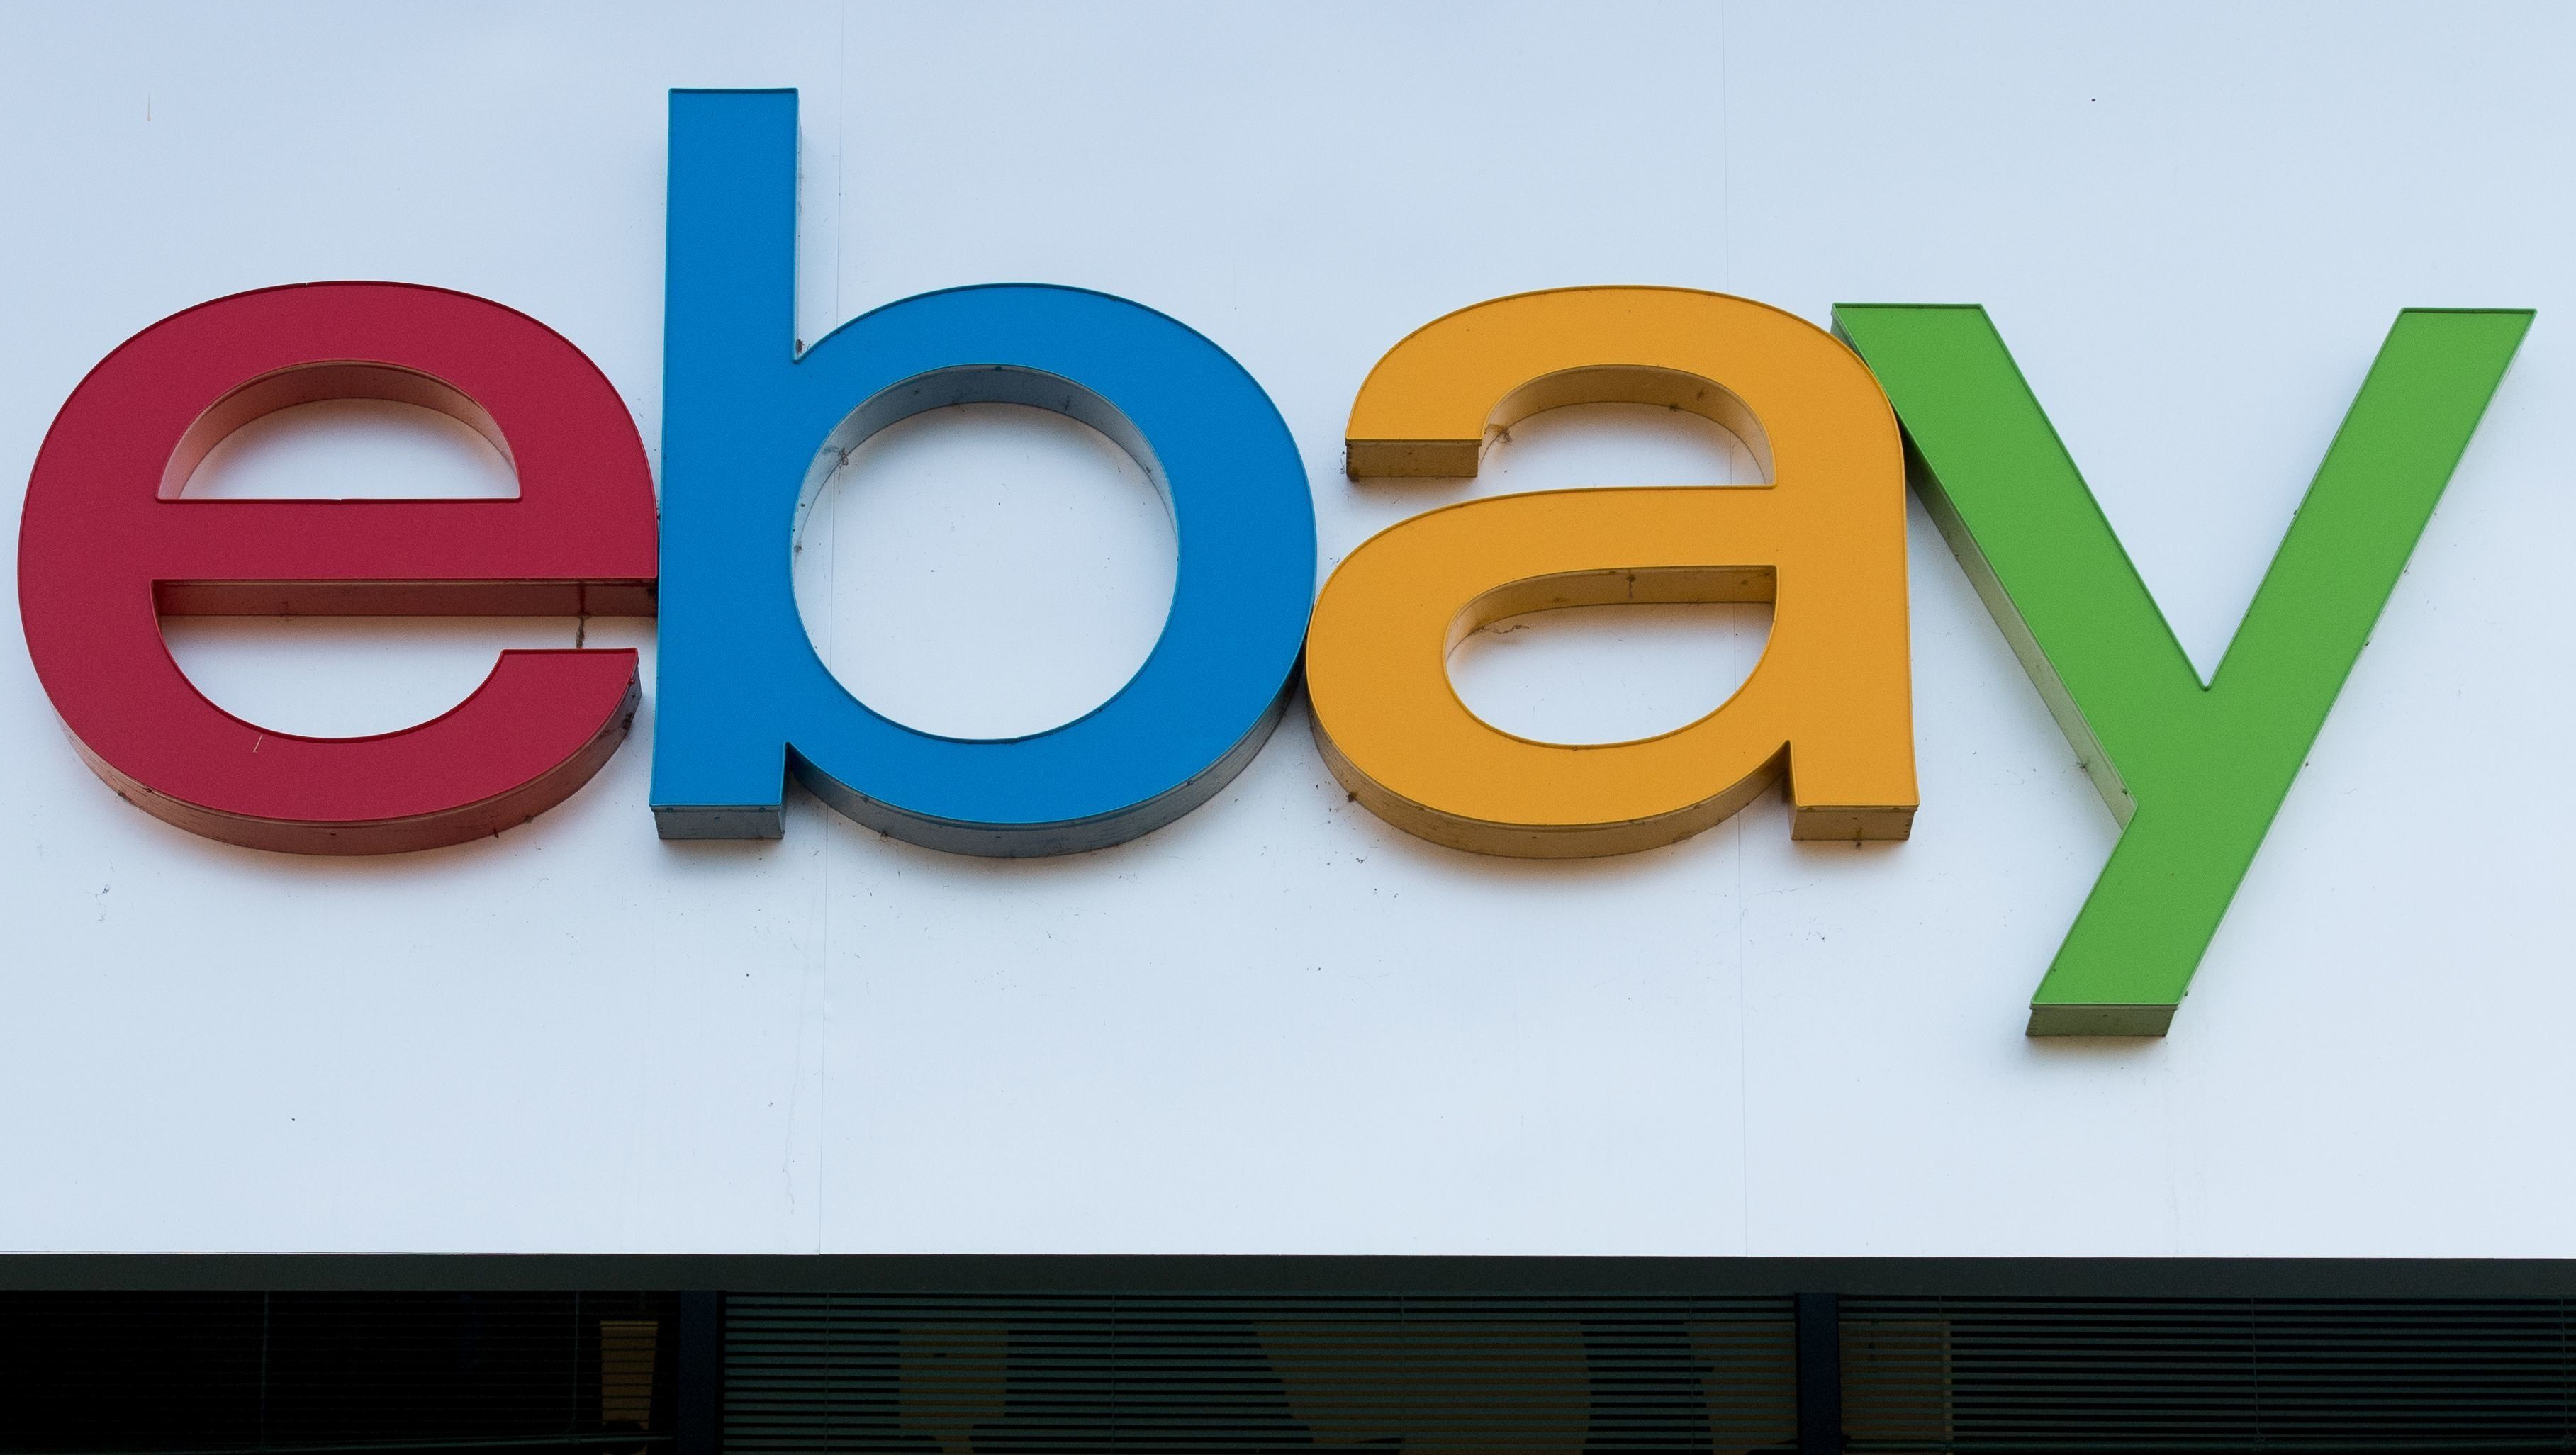 An Ebay sign and logo is seen in San Jose, California on November 4, 2016.  / AFP / JOSH EDELSON        (Photo credit should read JOSH EDELSON/AFP/Getty Images)